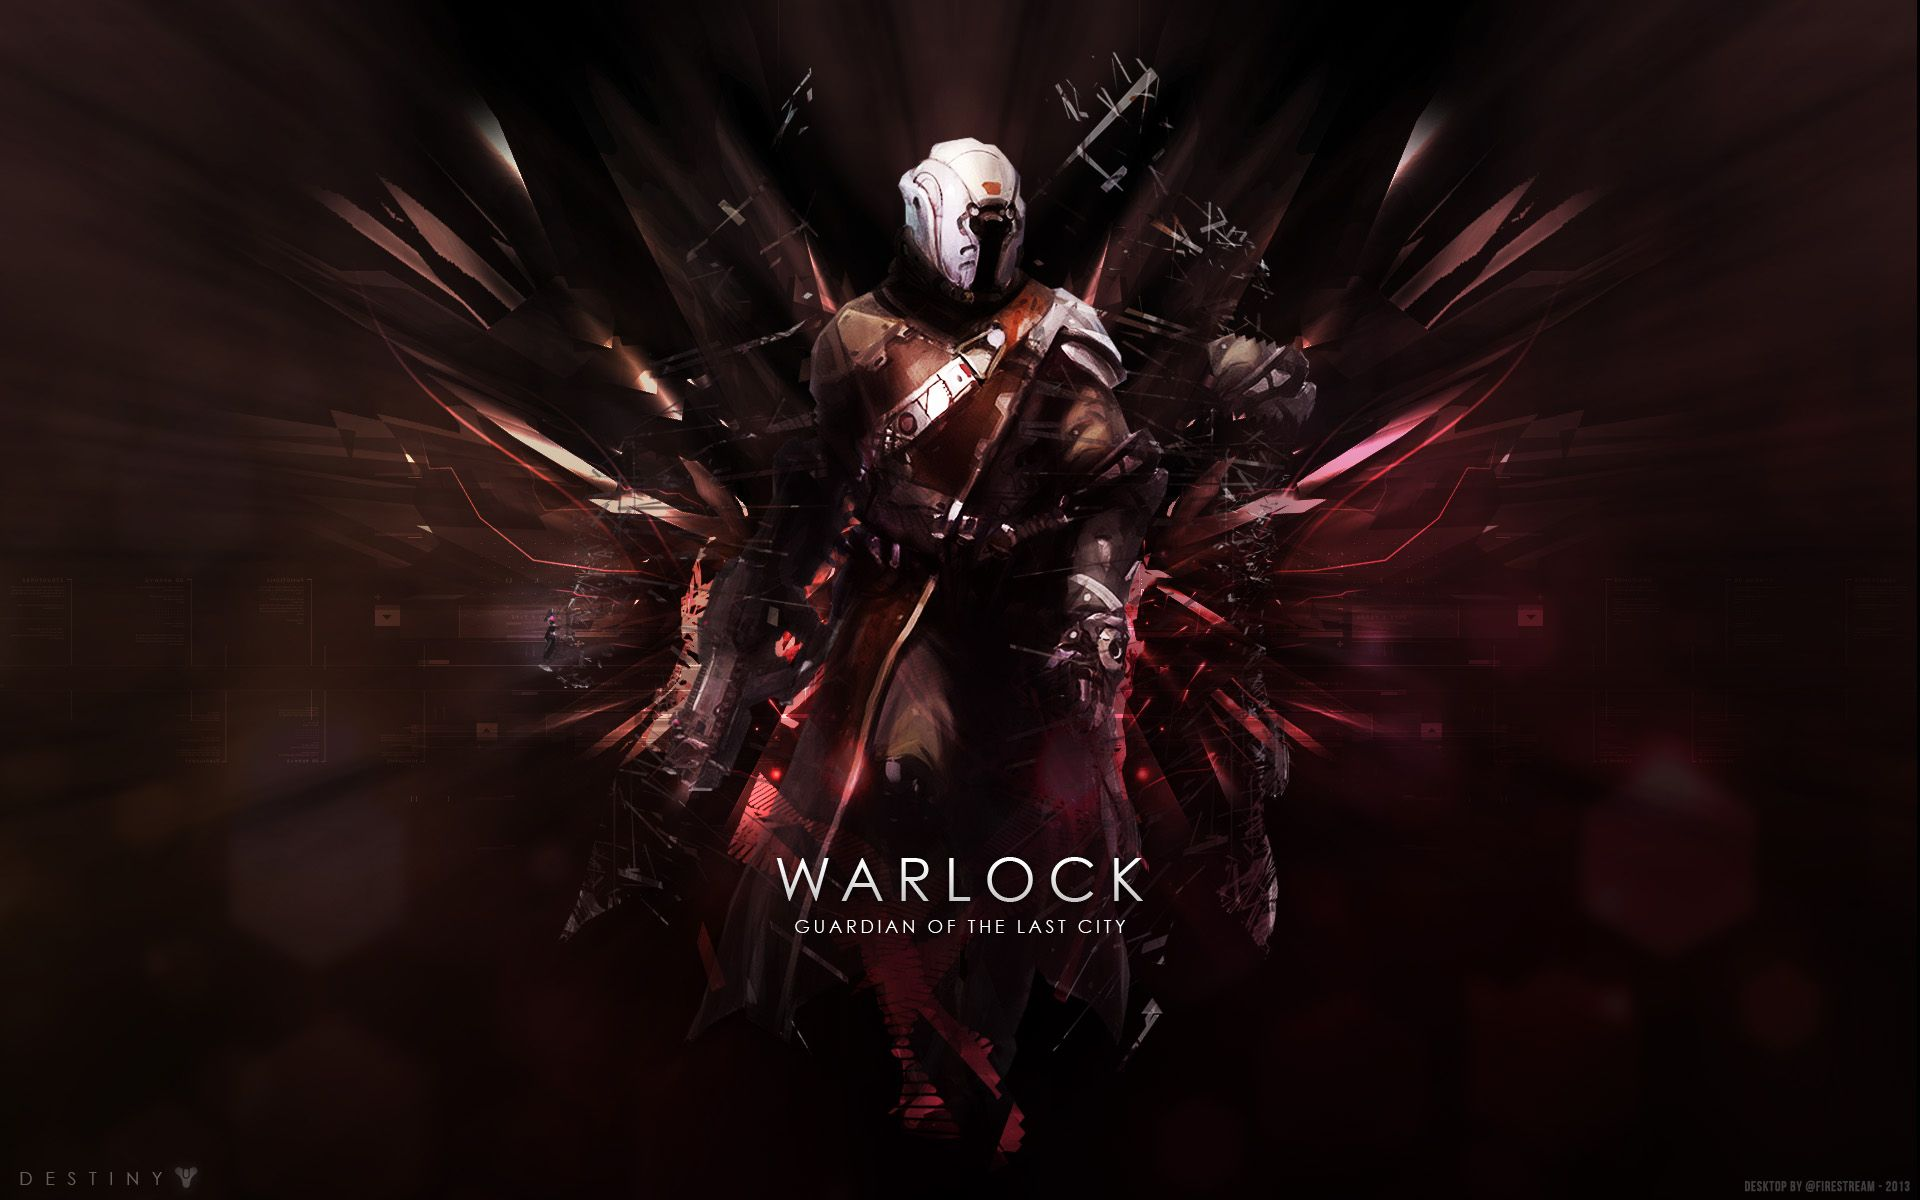 Destiny Warlock Armor Destiny's classes outlined